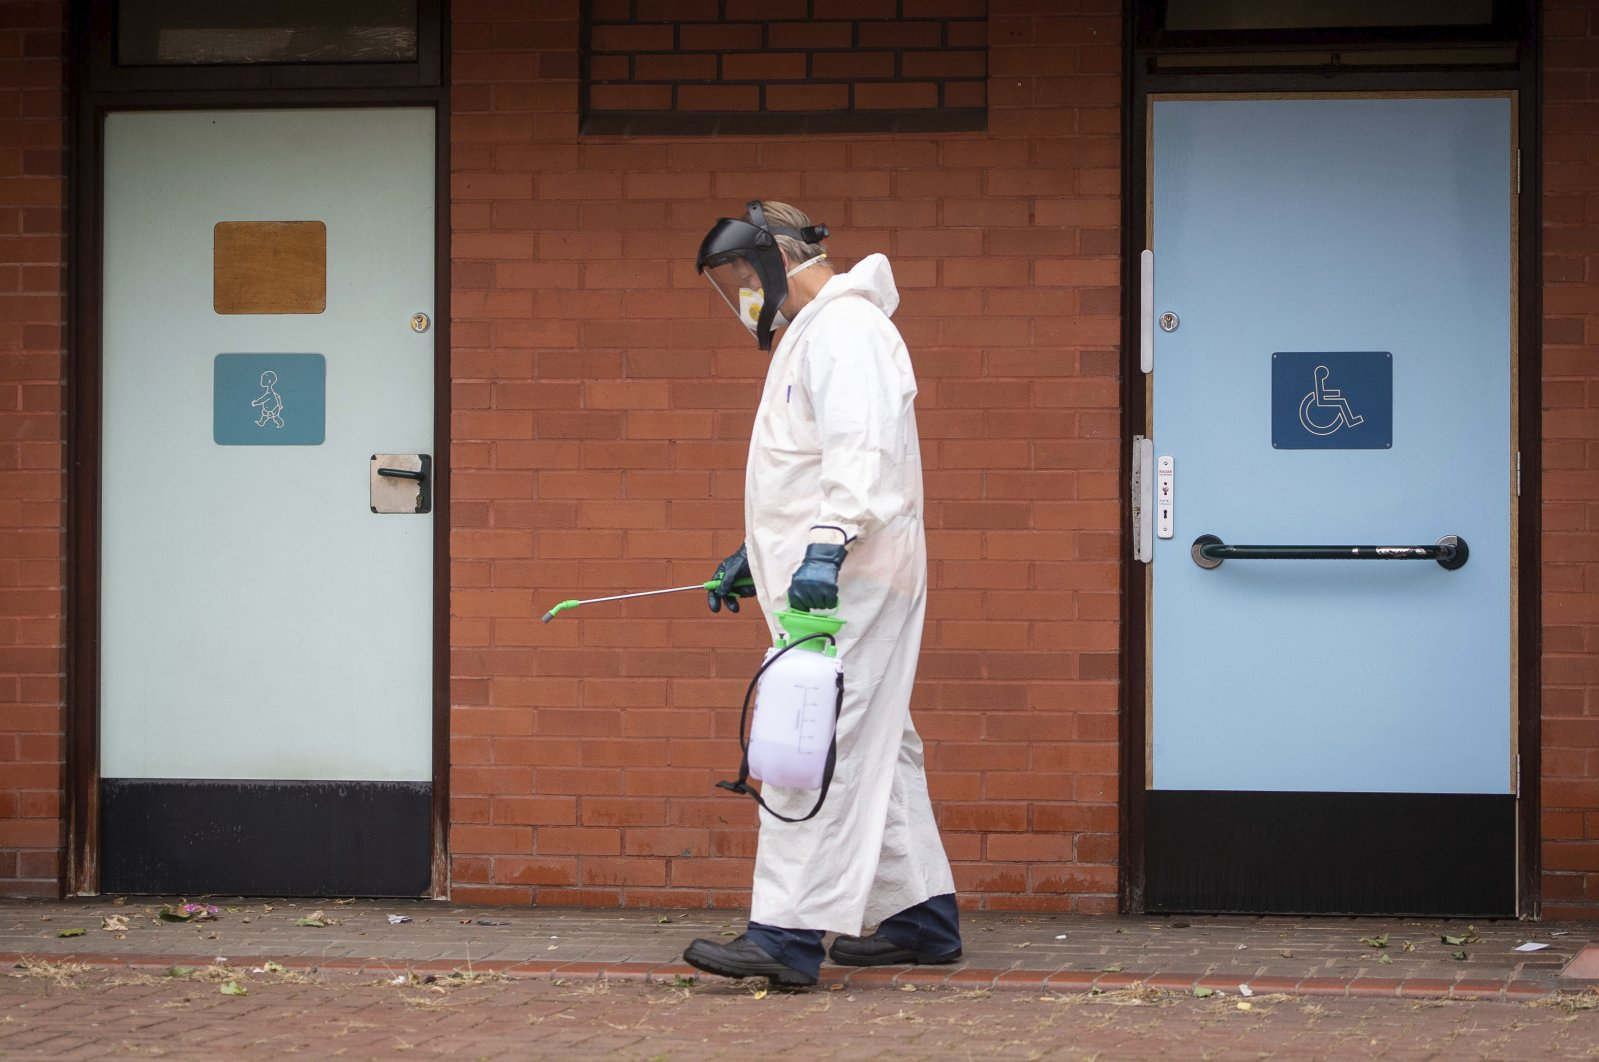 A worker for Leicester City Council disinfects public toilets, Leicester, June 29, 2020. (AP Photo)